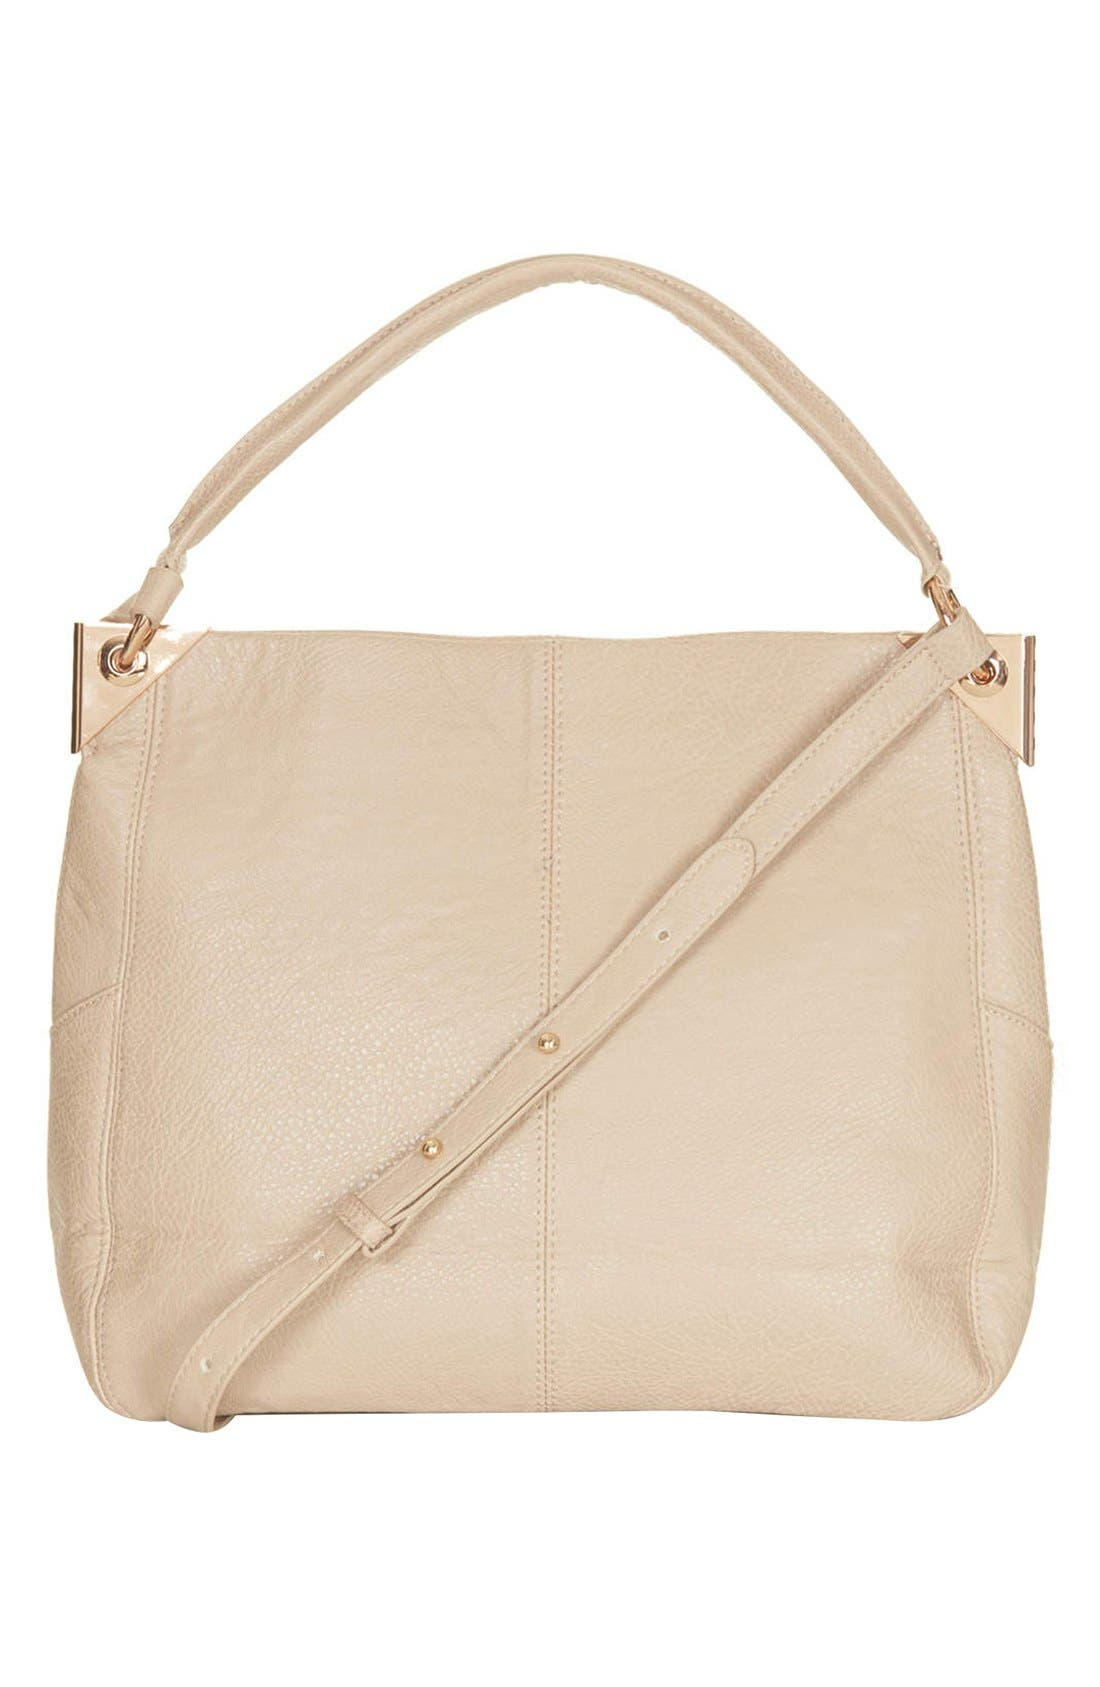 Alternate Image 1 Selected - Topshop Faux Leather Hobo Bag